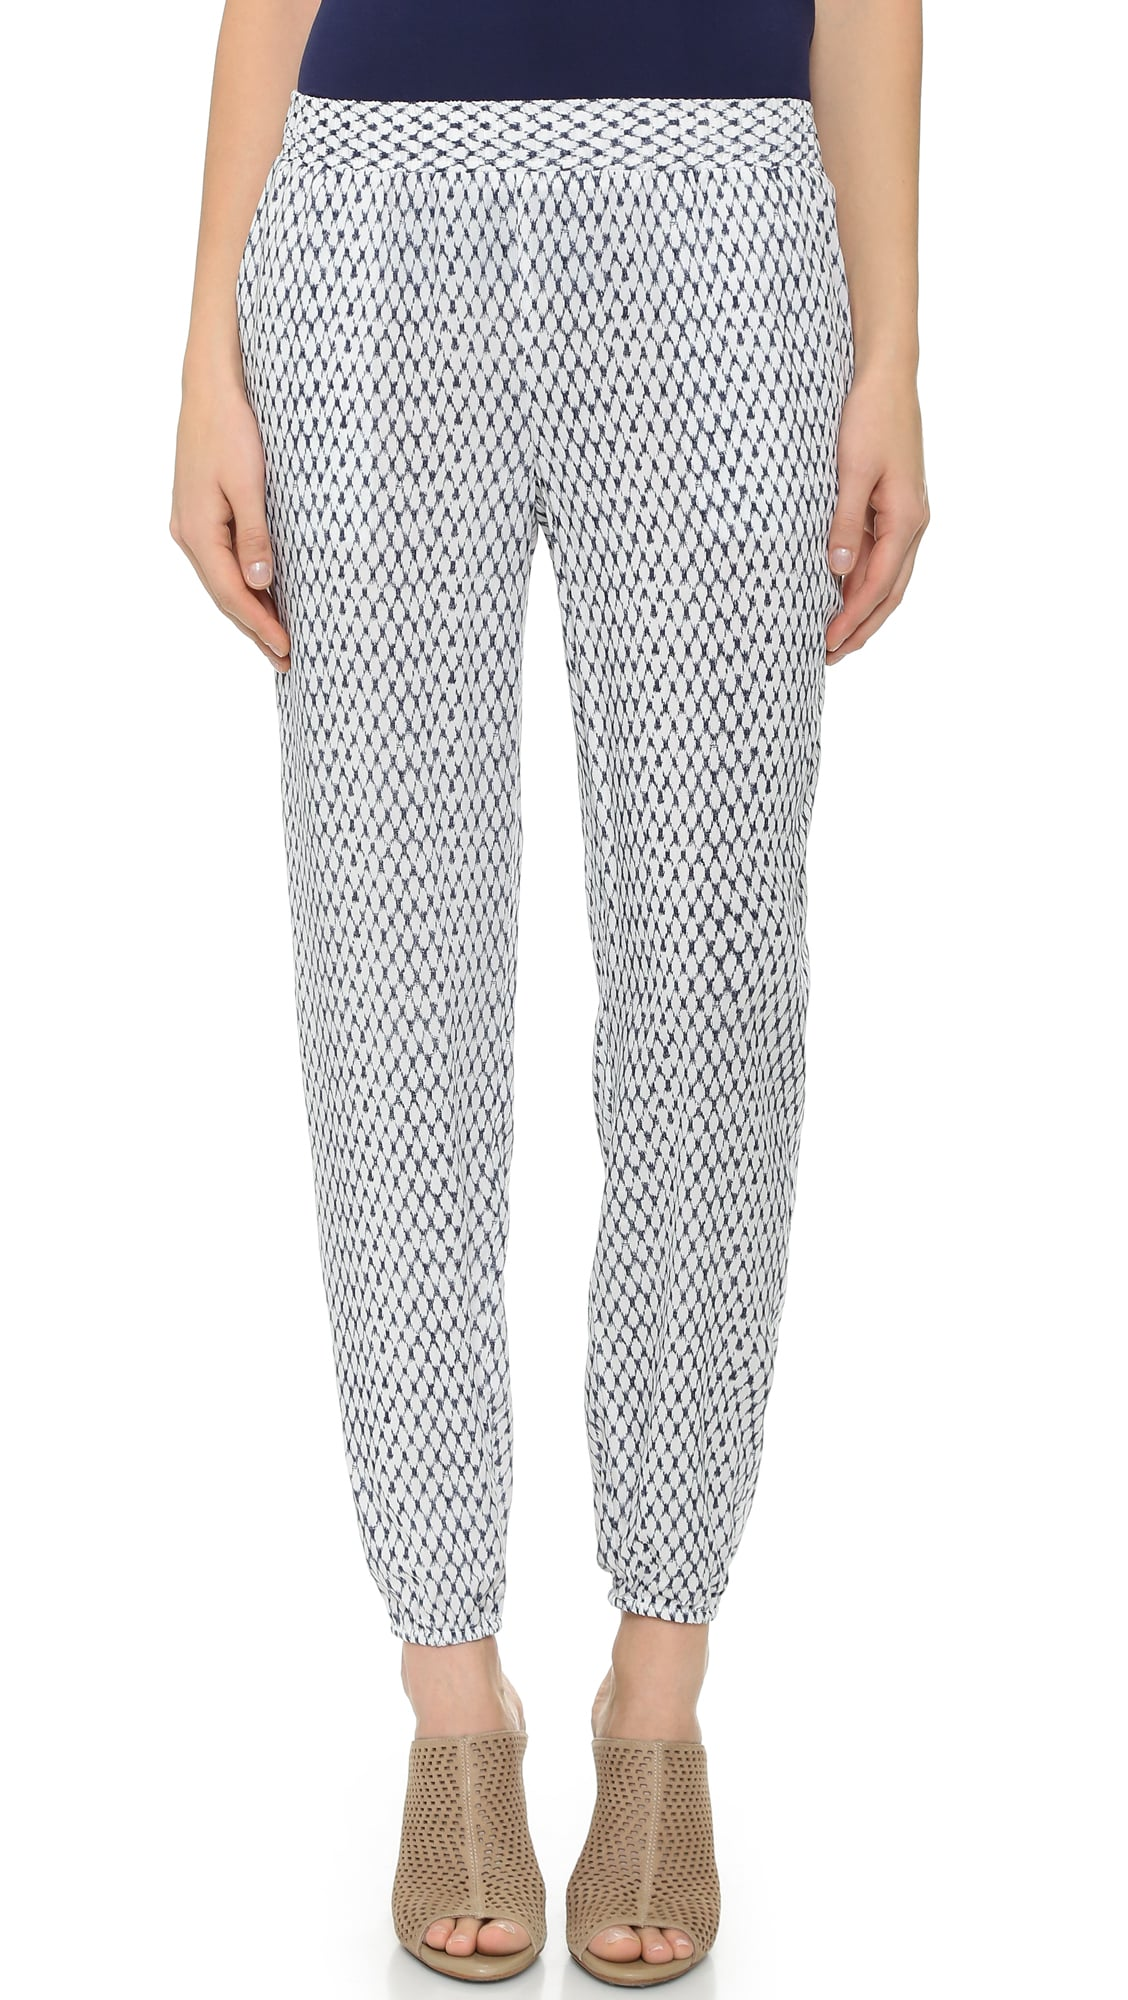 Soft Joie Sidra Pants ($148)